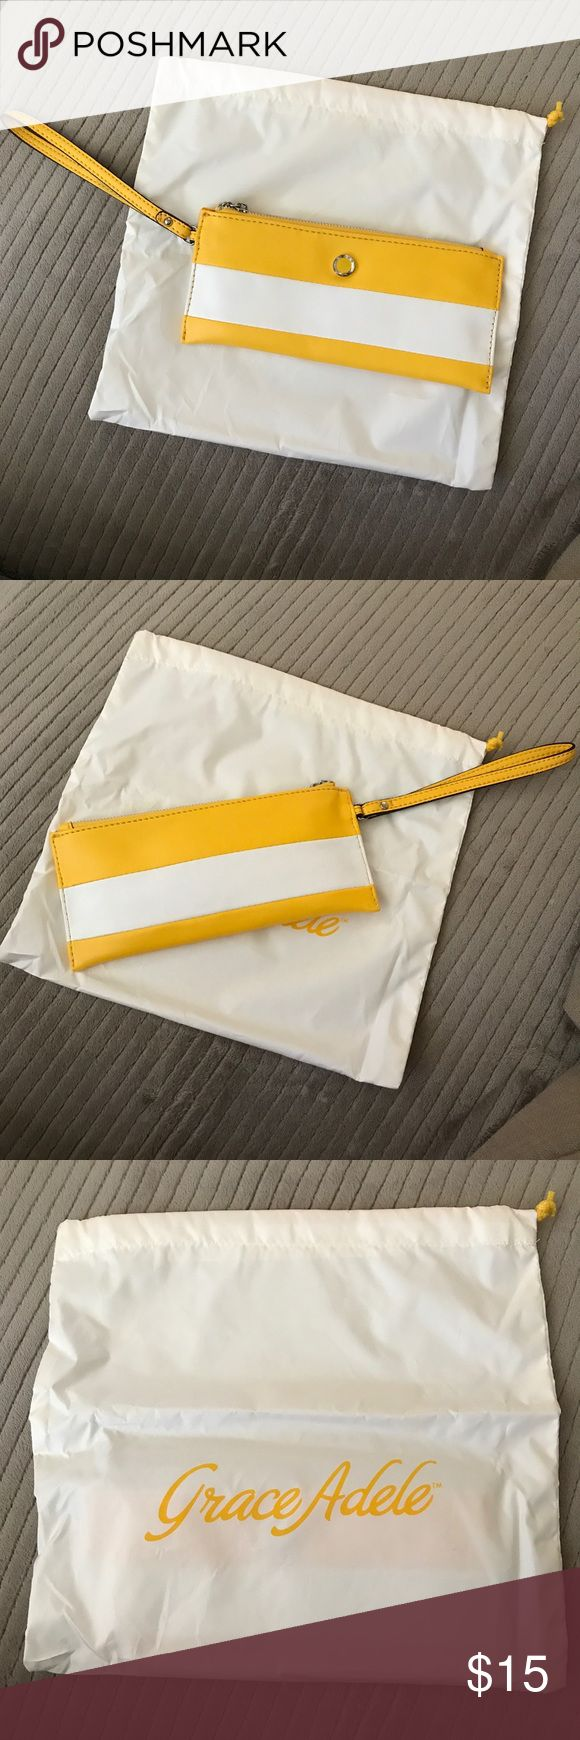 Grace Adele Yellow Wristlet BRAND NEW! Never been out of package Grace Adele Wristlet Grace Adele Bags Clutches & Wristlets